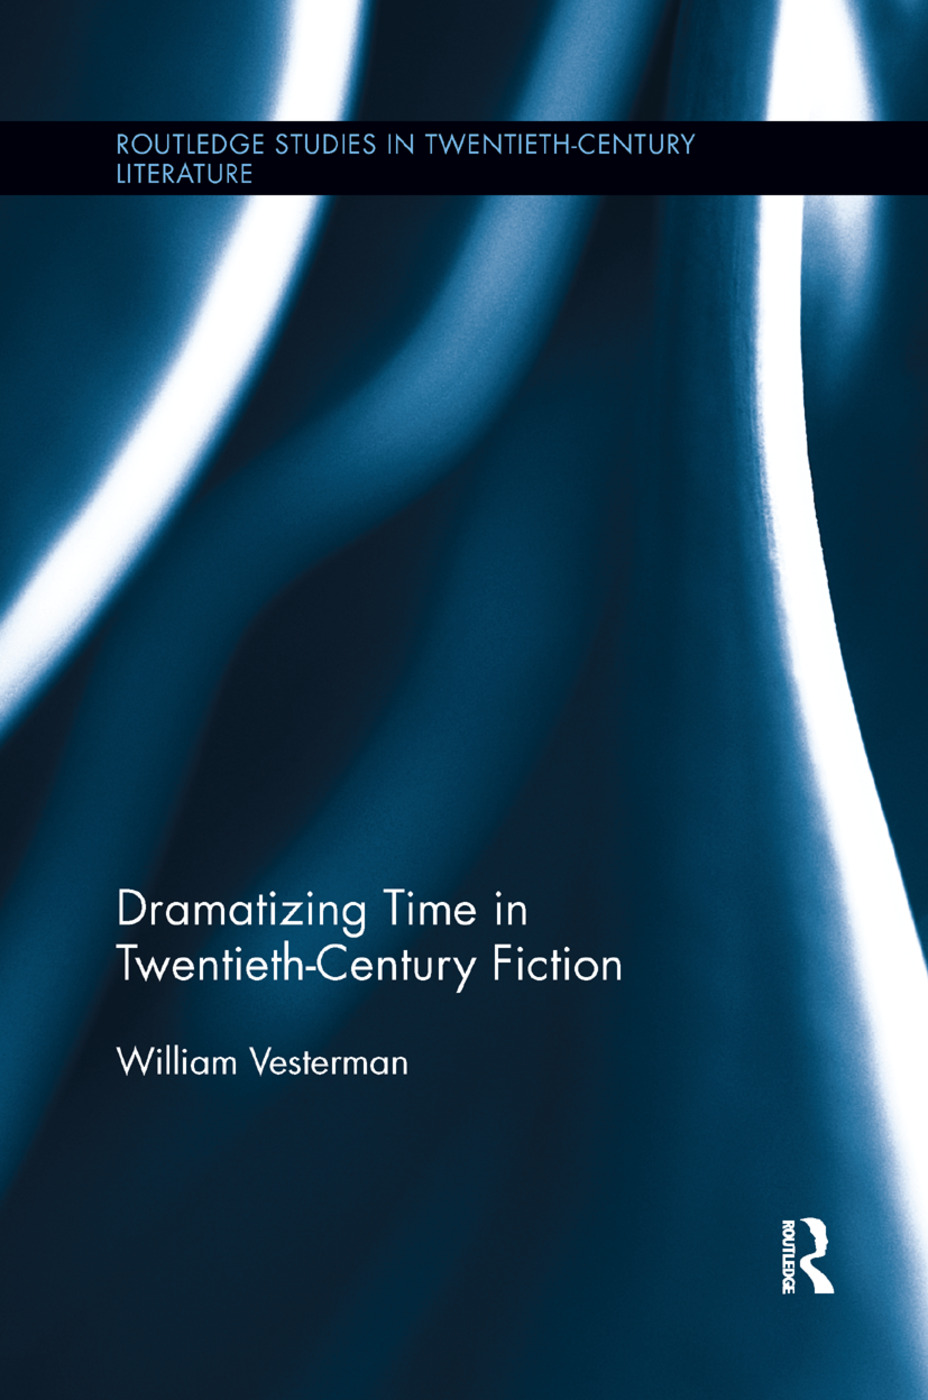 Dramatizing Time in Twentieth-Century Fiction